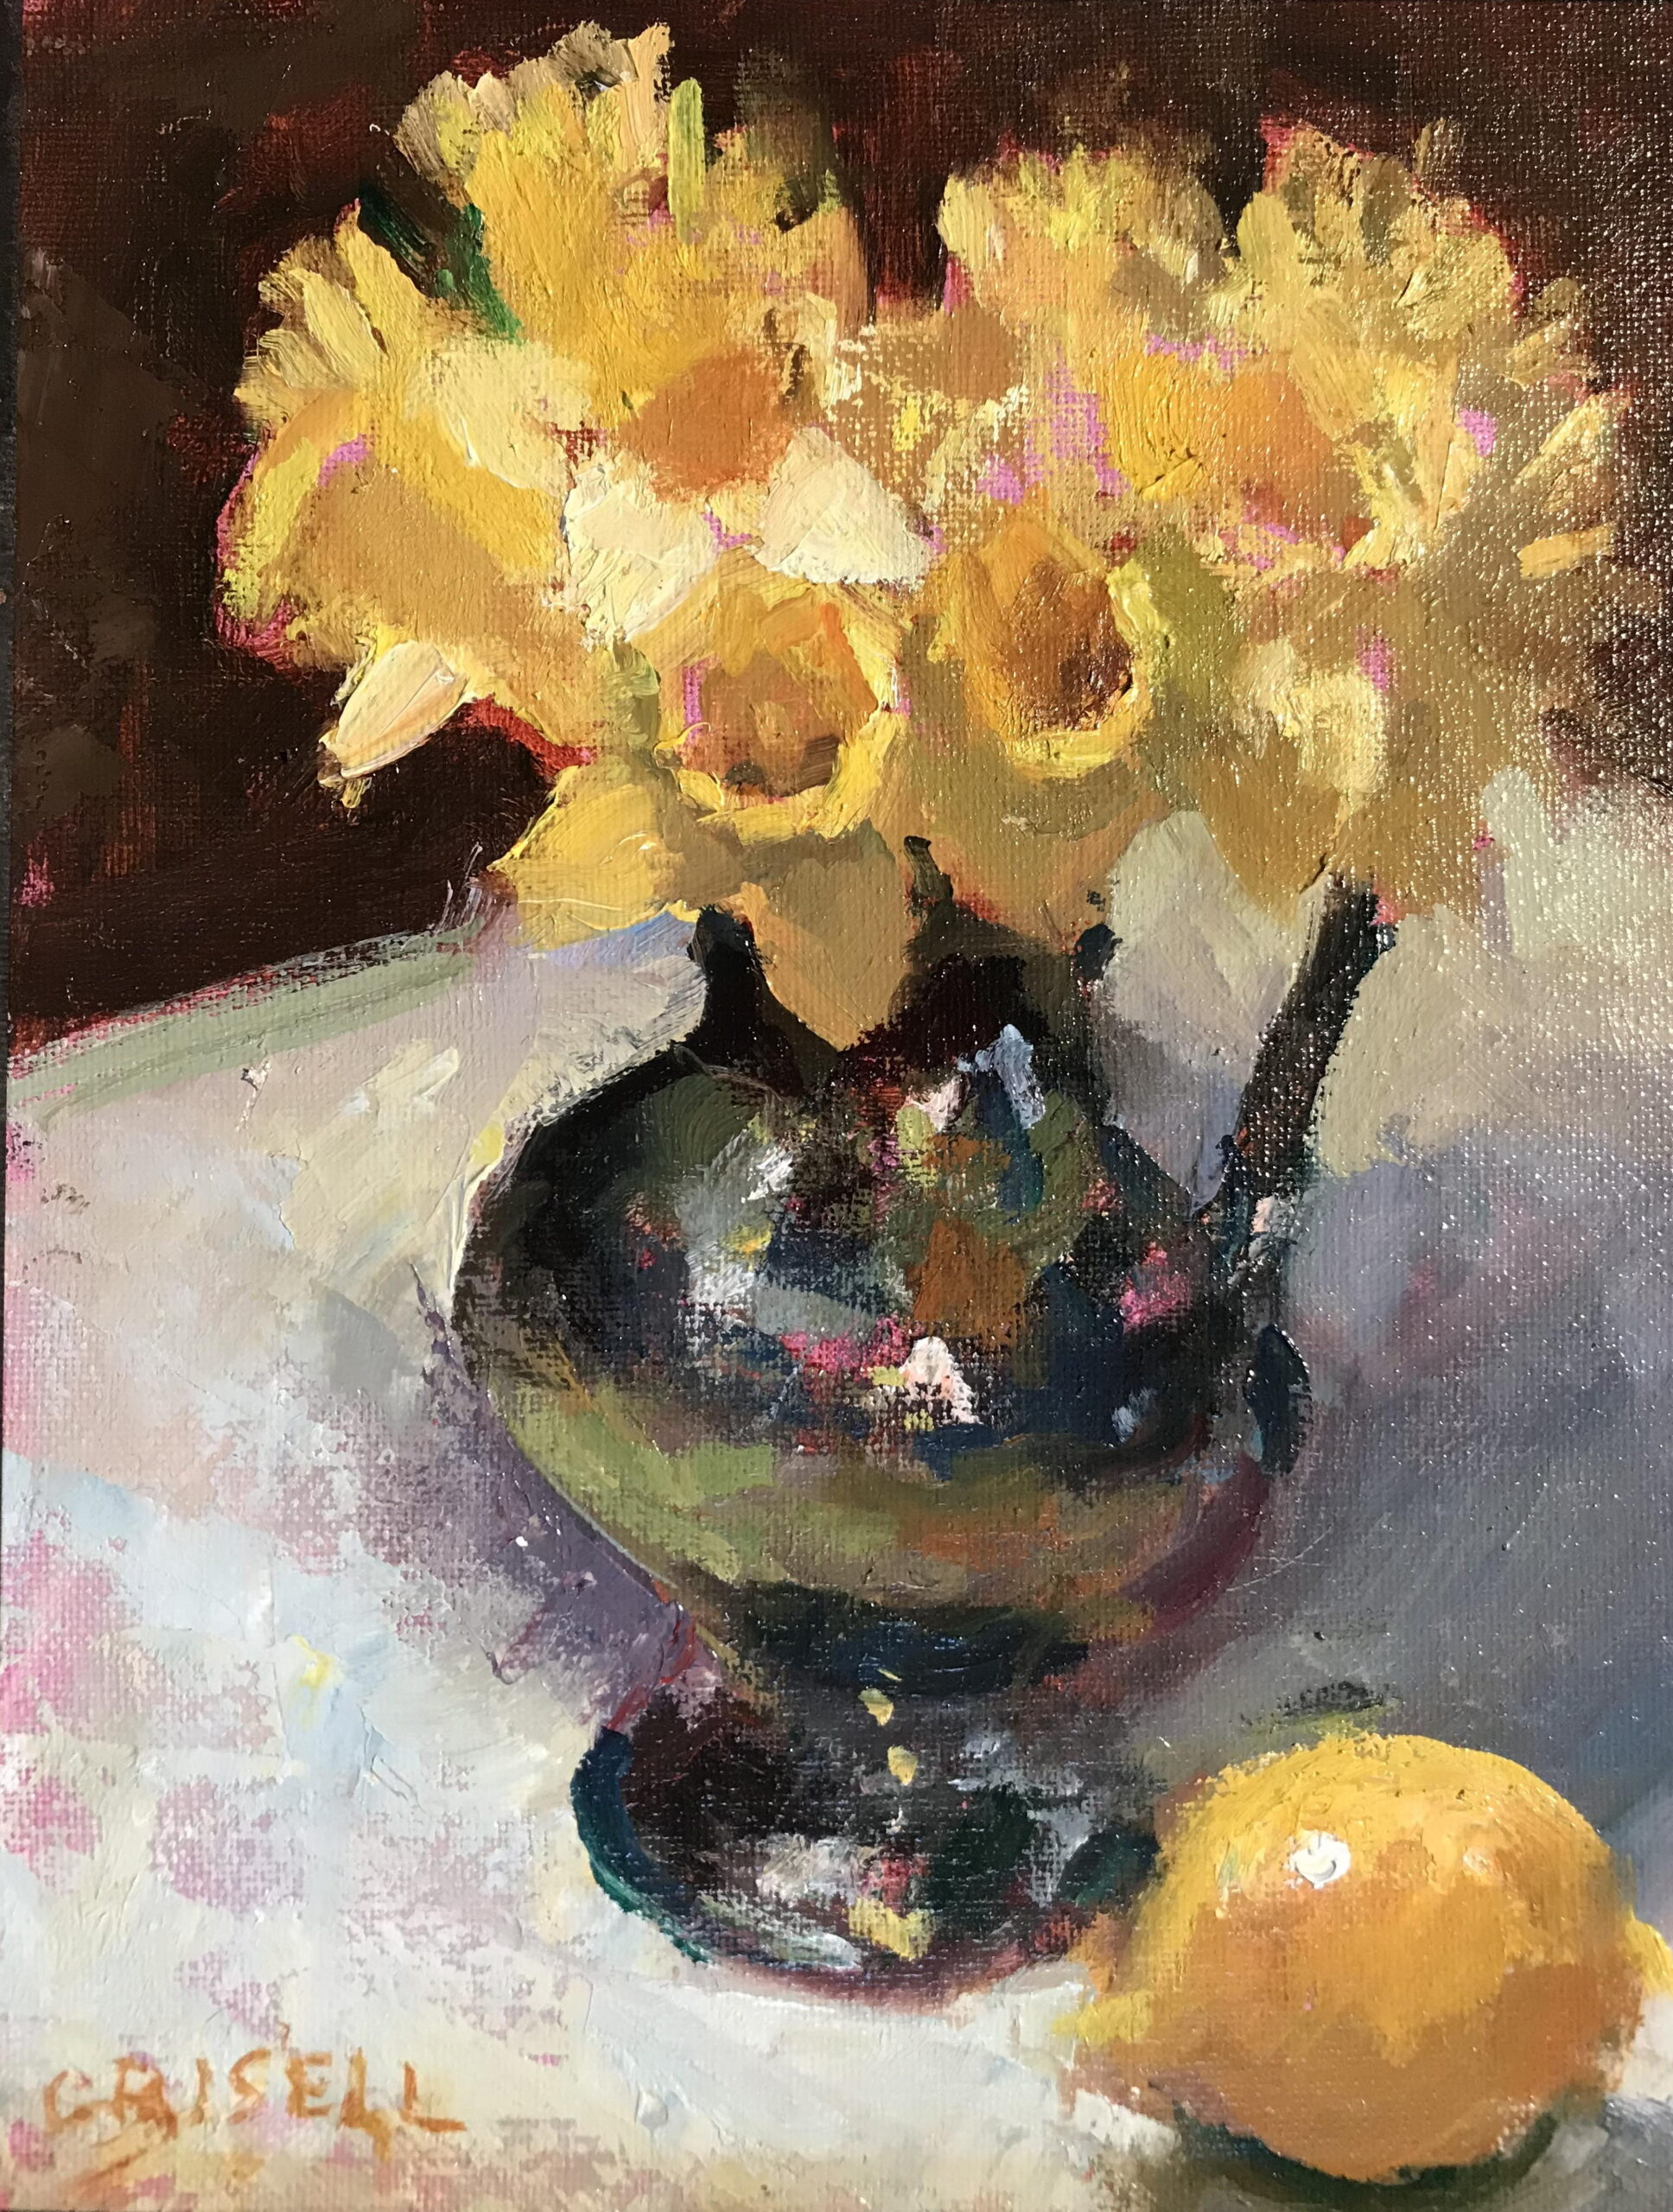 Daffodils and Silver Pitcher, Oil on Canvas on Panel, 10 x 8 Inches, by Susan Grisell, $200